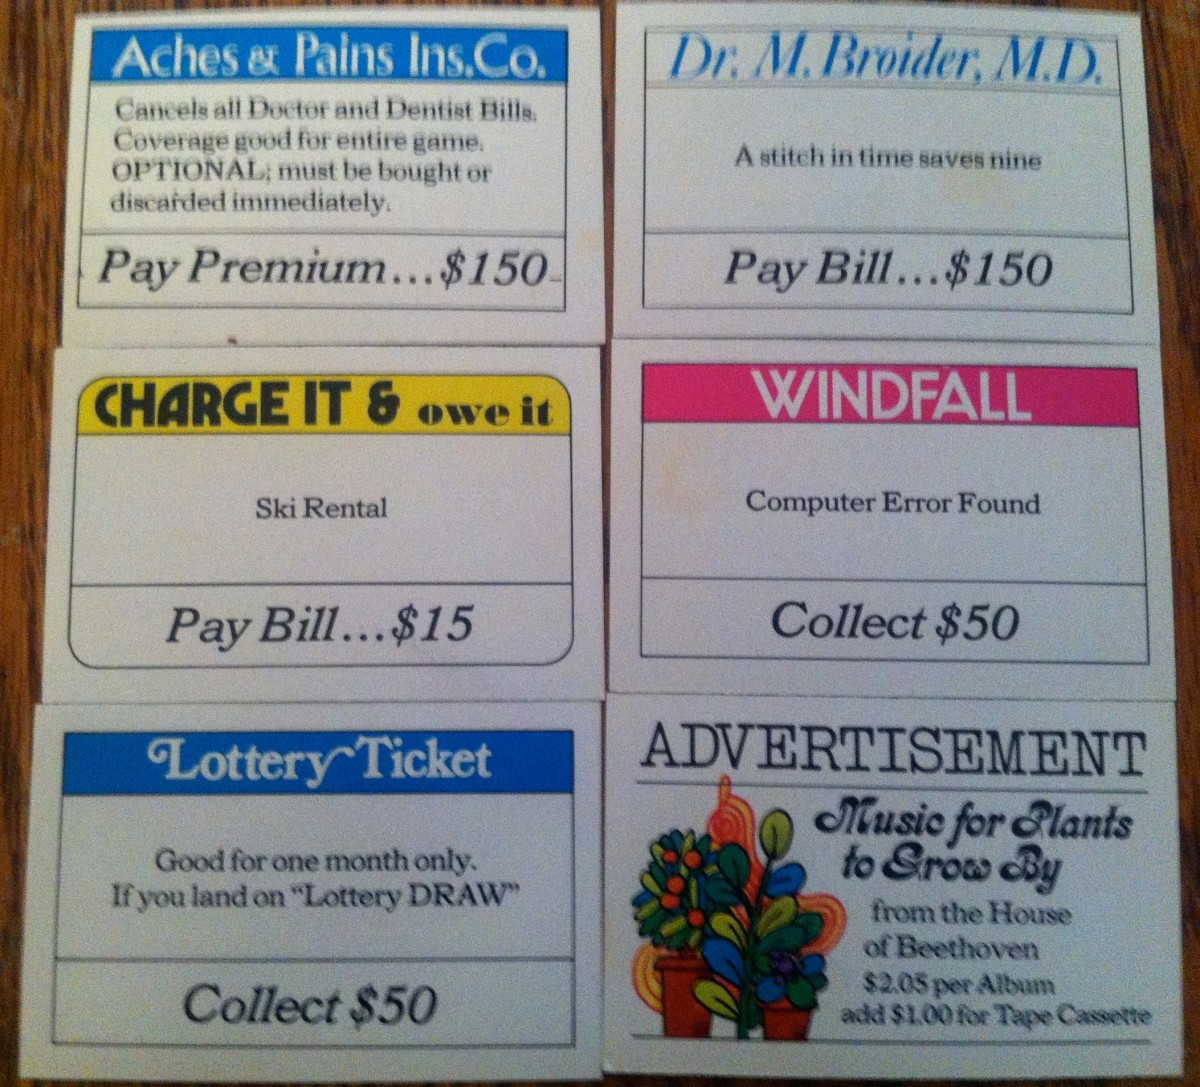 Mail that can be received in Payday, which can contain bills, insurance, or even junk mail.